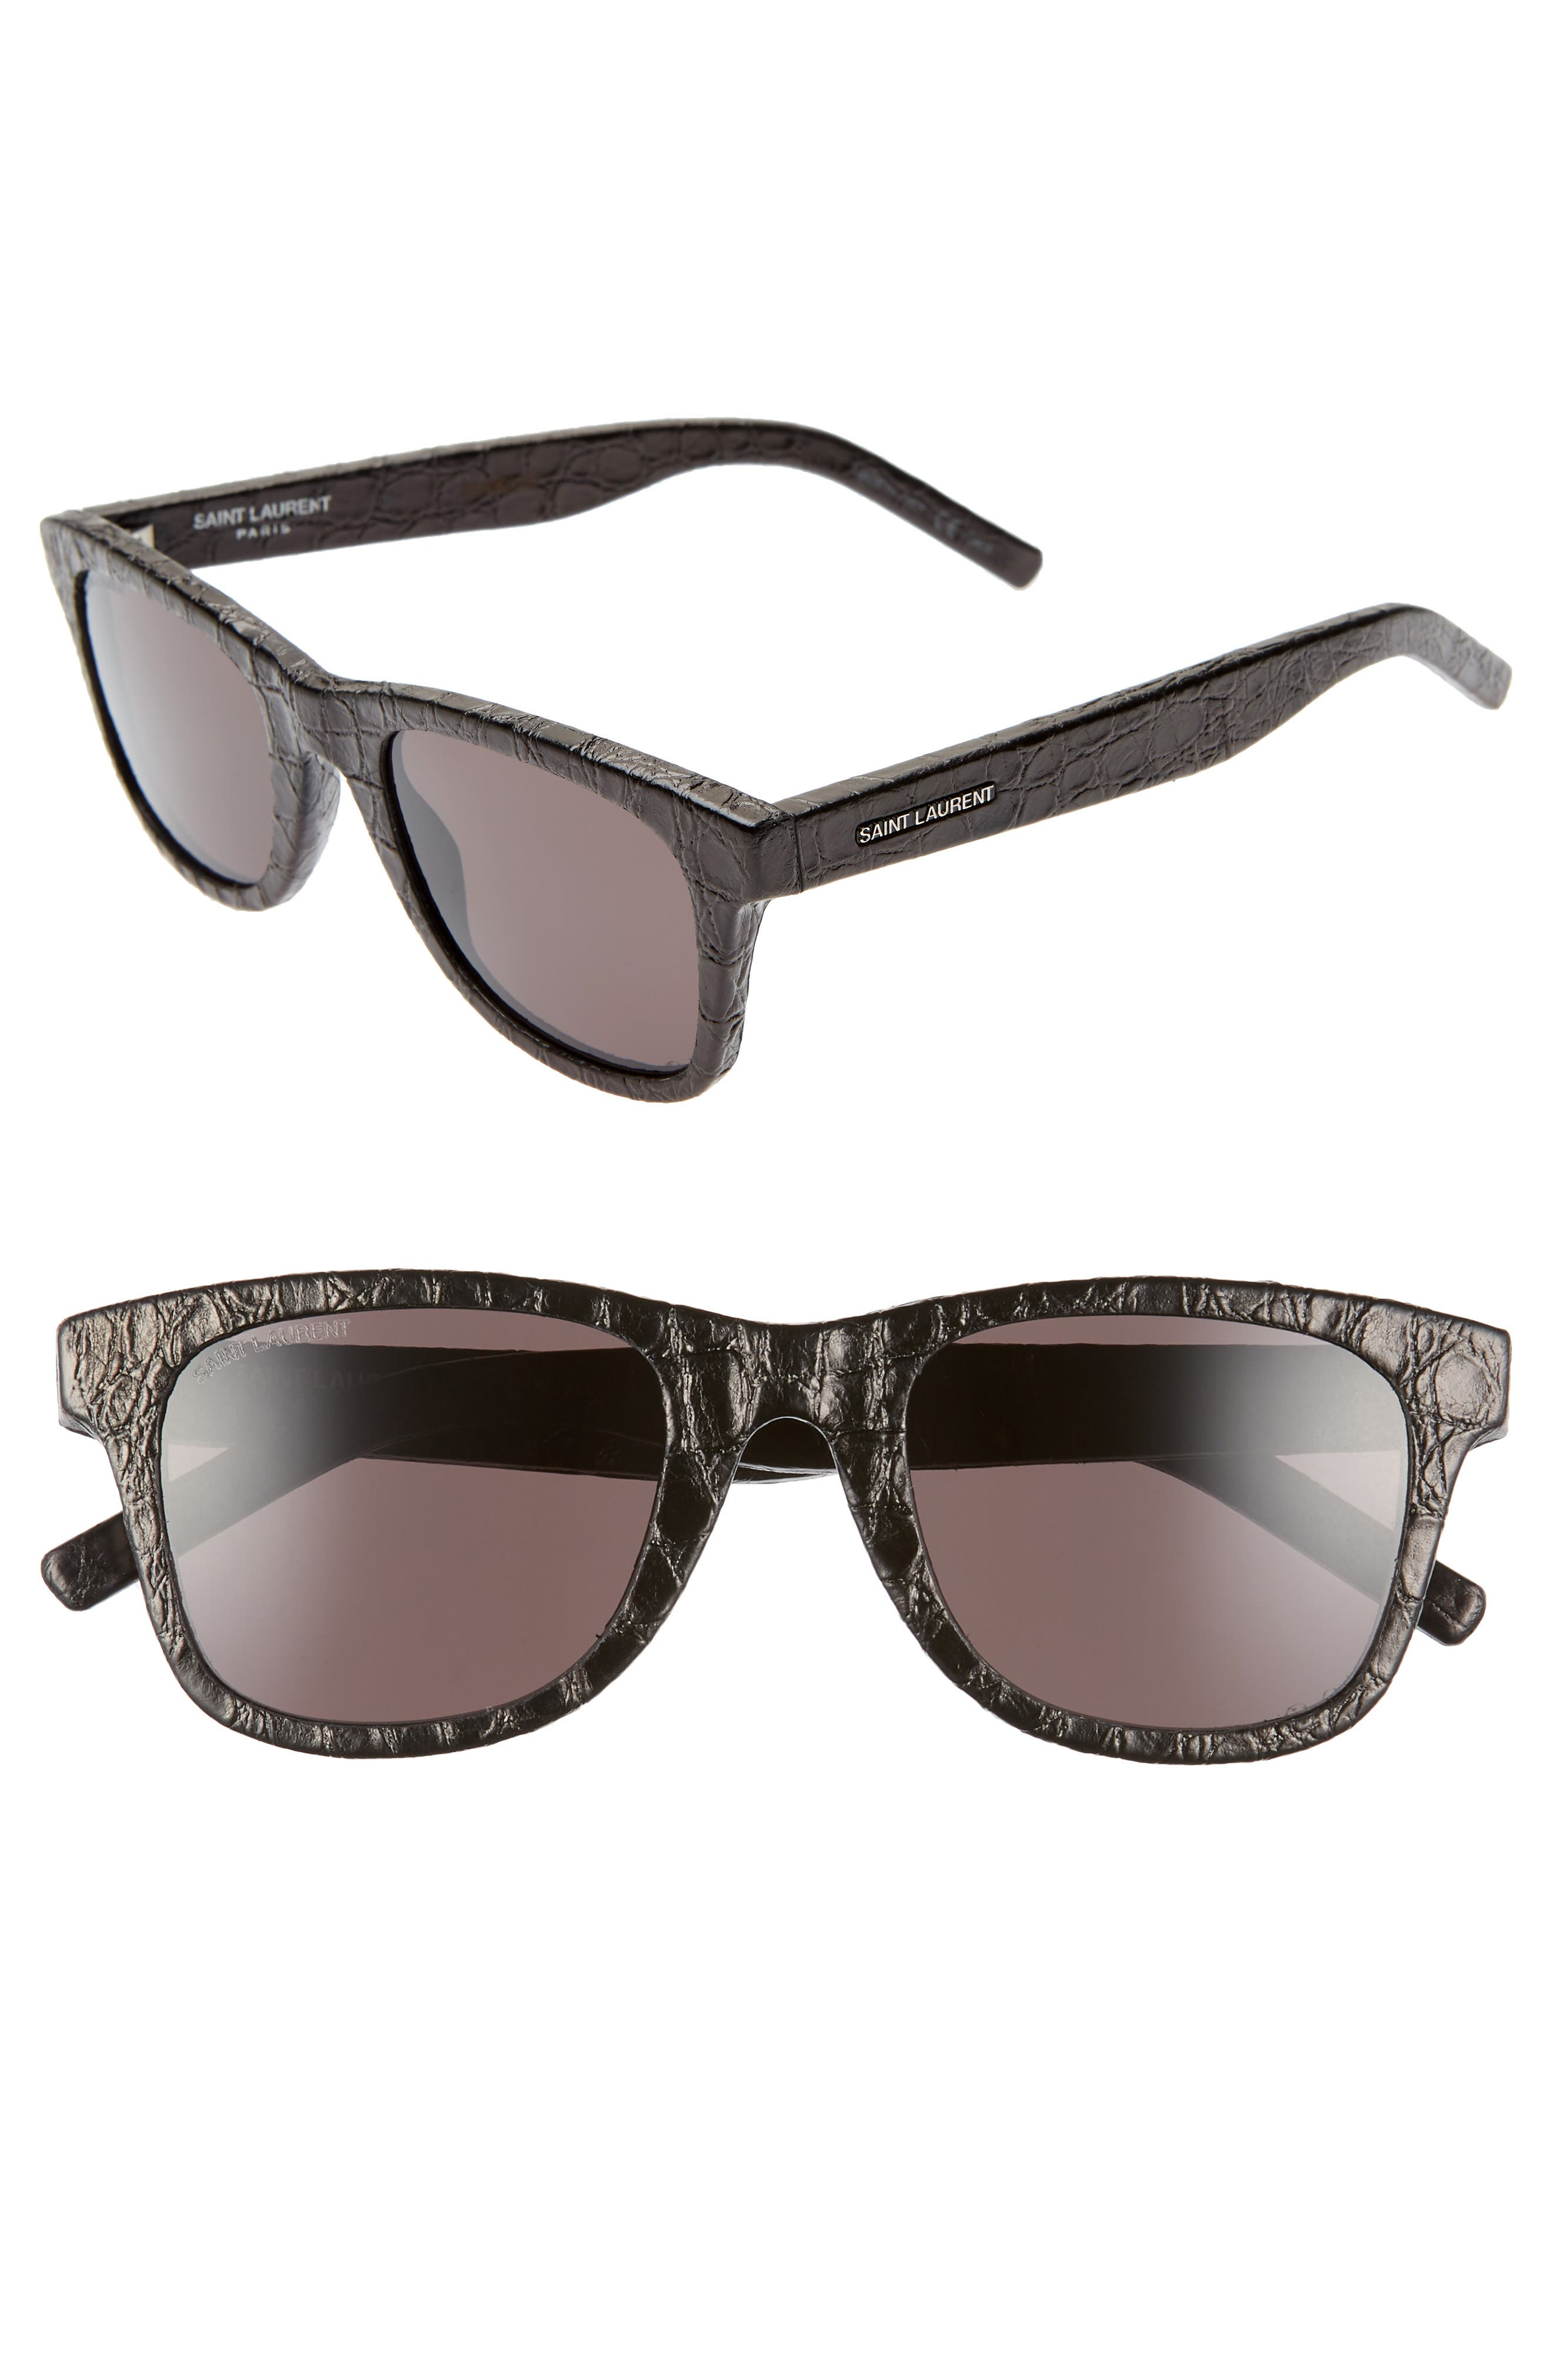 50mm Leather Wrapped Flat Top Sunglasses,                             Main thumbnail 1, color,                             BLACK CROCO/ GREY